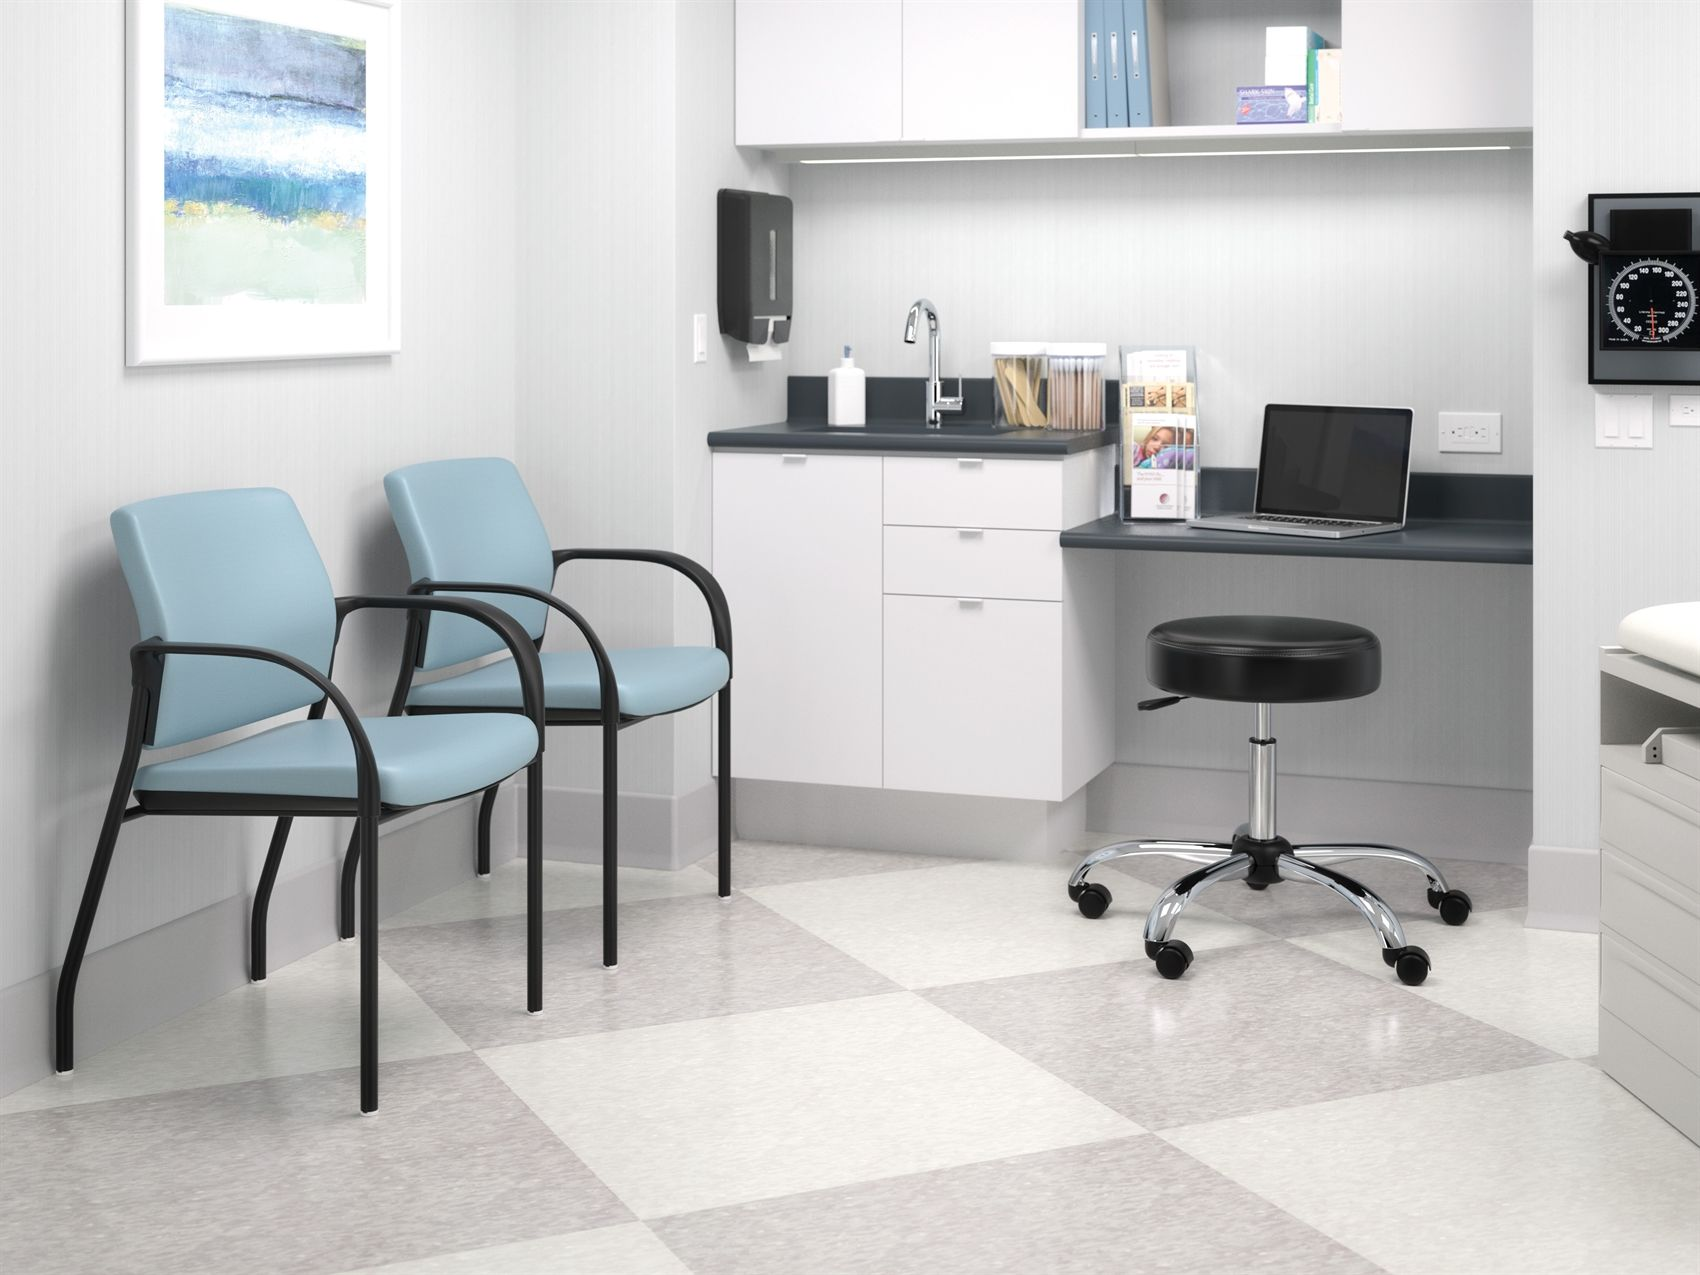 Hon healthcare exam room learn more at